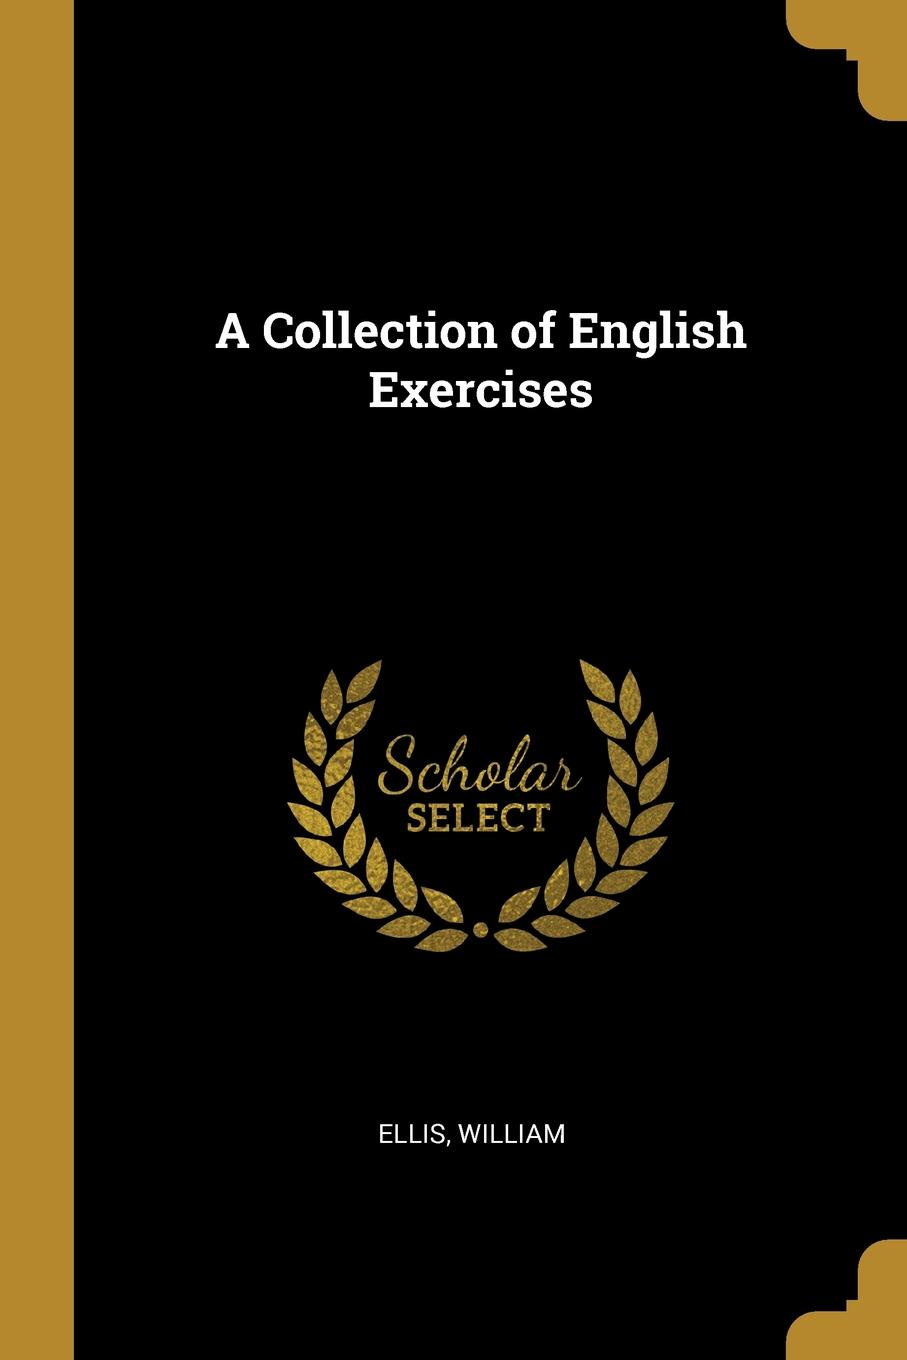 A Collection of English Exercises